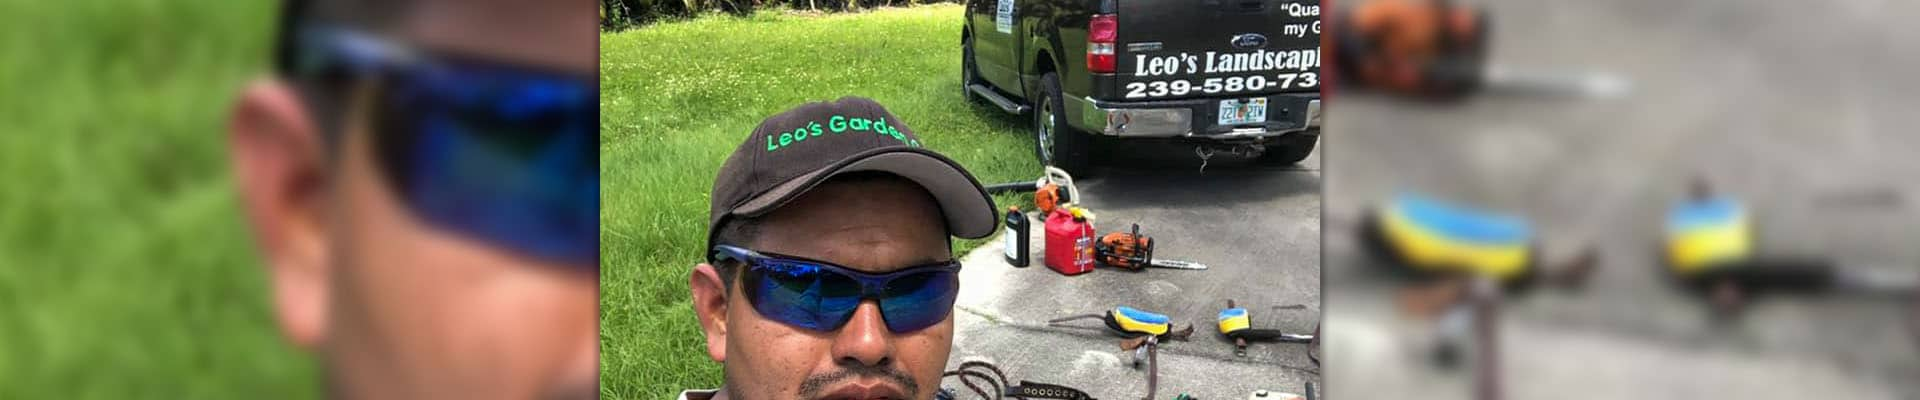 The owner of Leo Garden Care wearing a Leo Garden Care hat, standing in front of a truck bearing the company's logo.